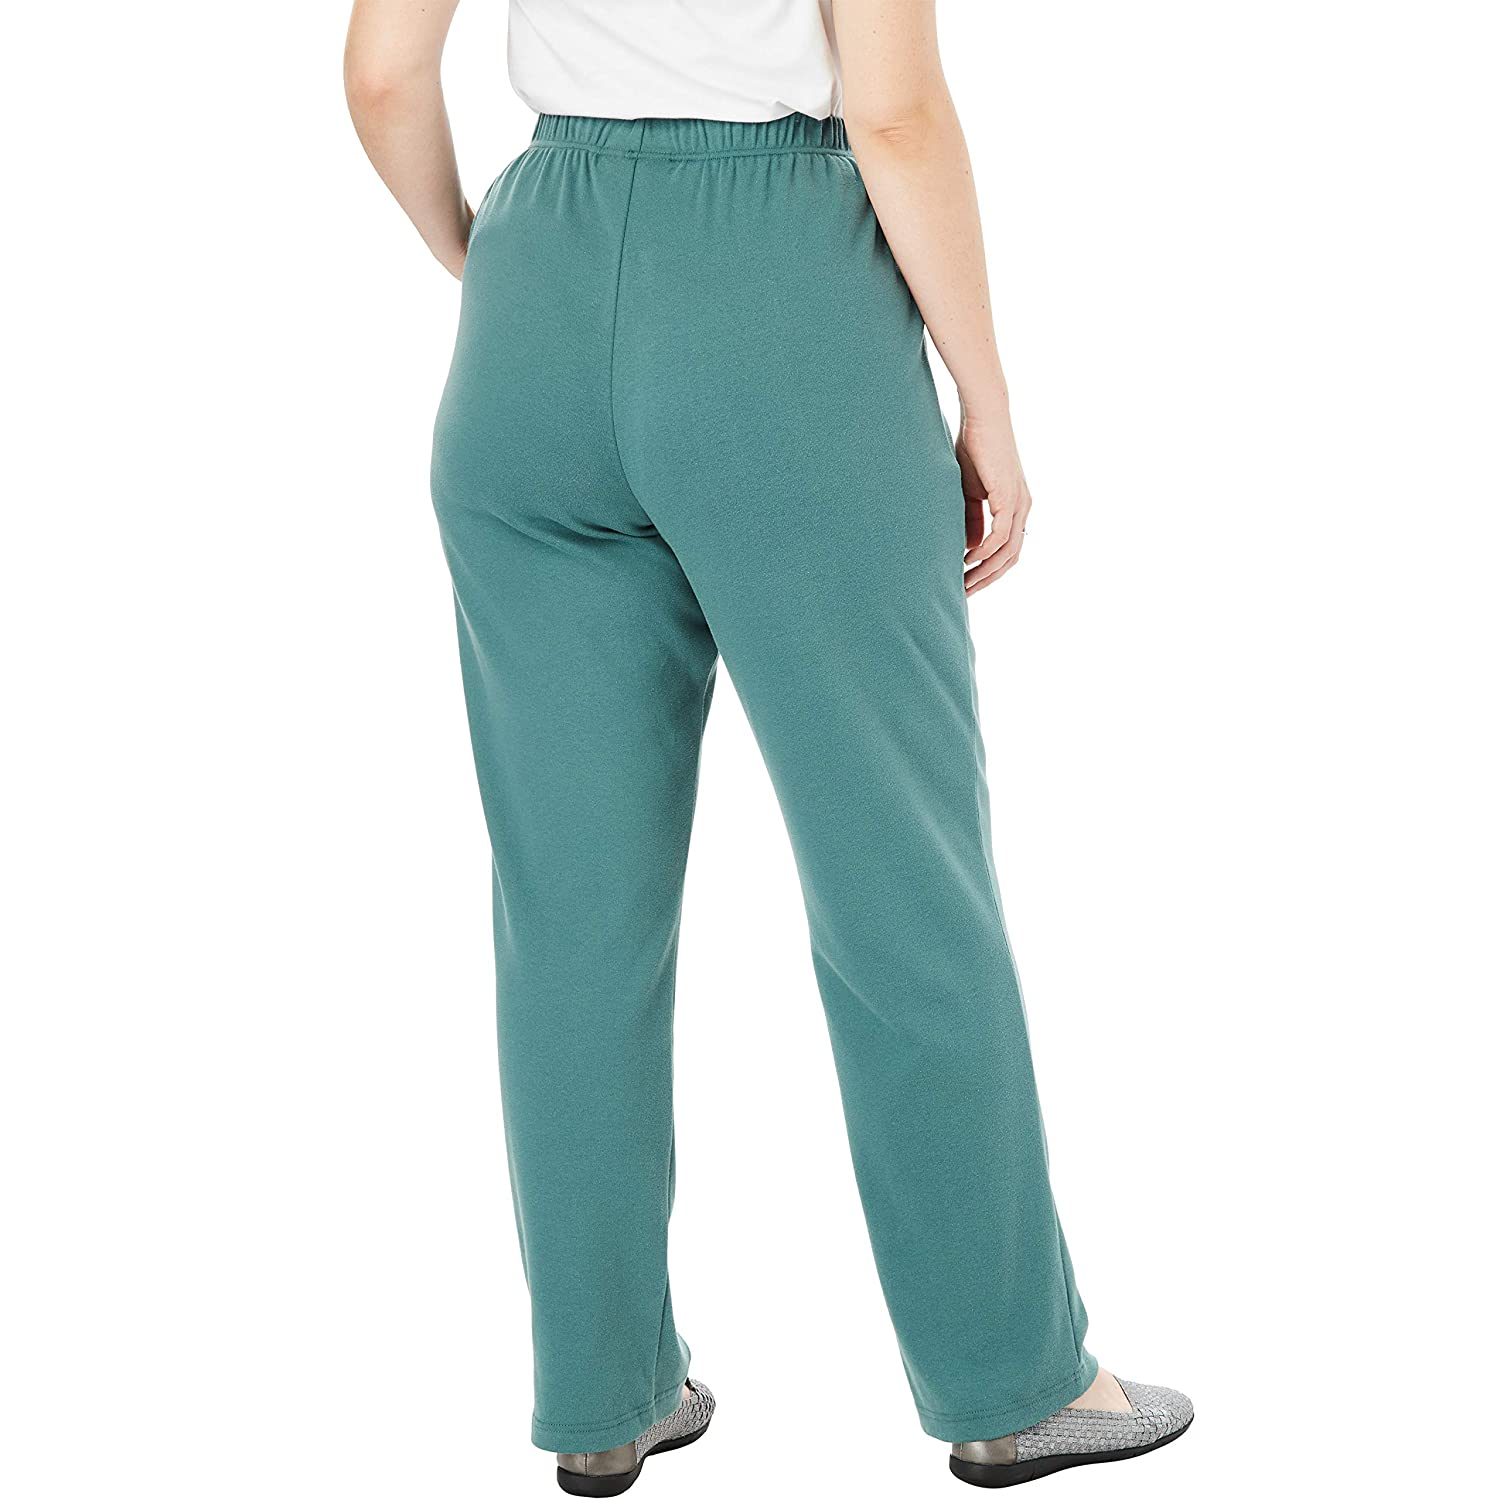 6adb9fede6 Woman Within Women's Plus Size 7-Day Knit Straight Leg Pant at Amazon  Women's Clothing store: